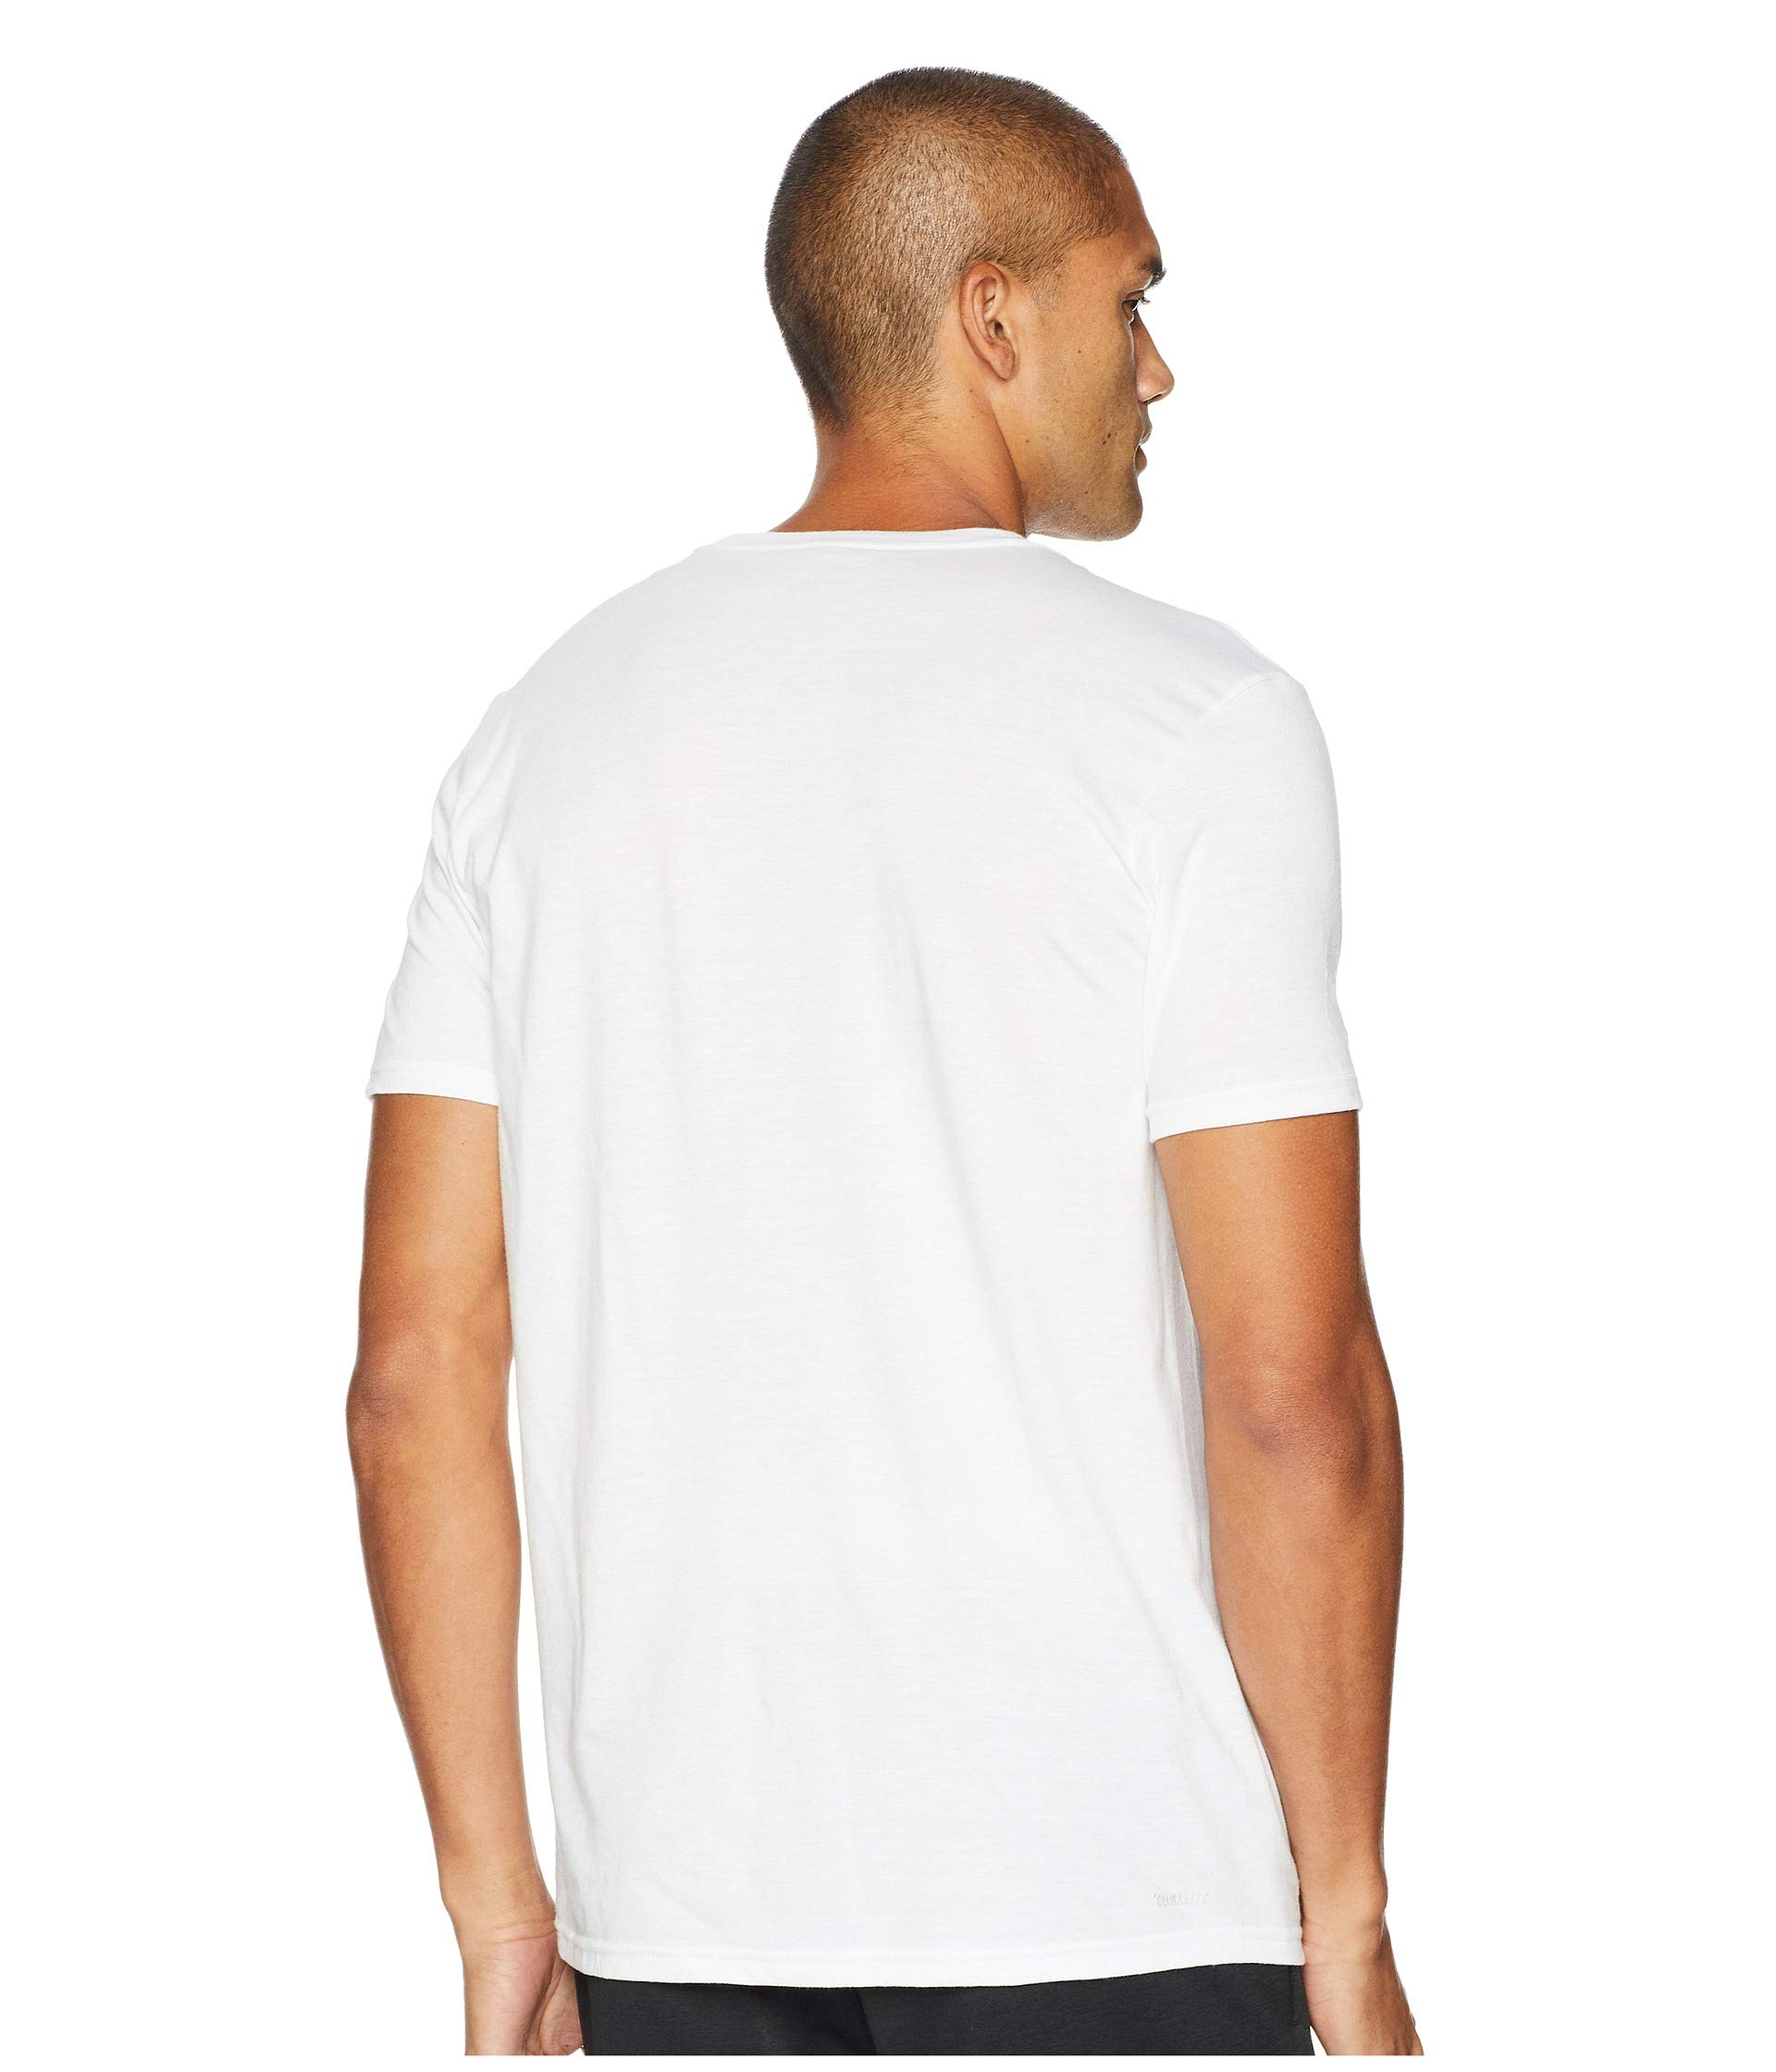 Adidas Life 3 White stripes Stitch Tee pwAq1pEr